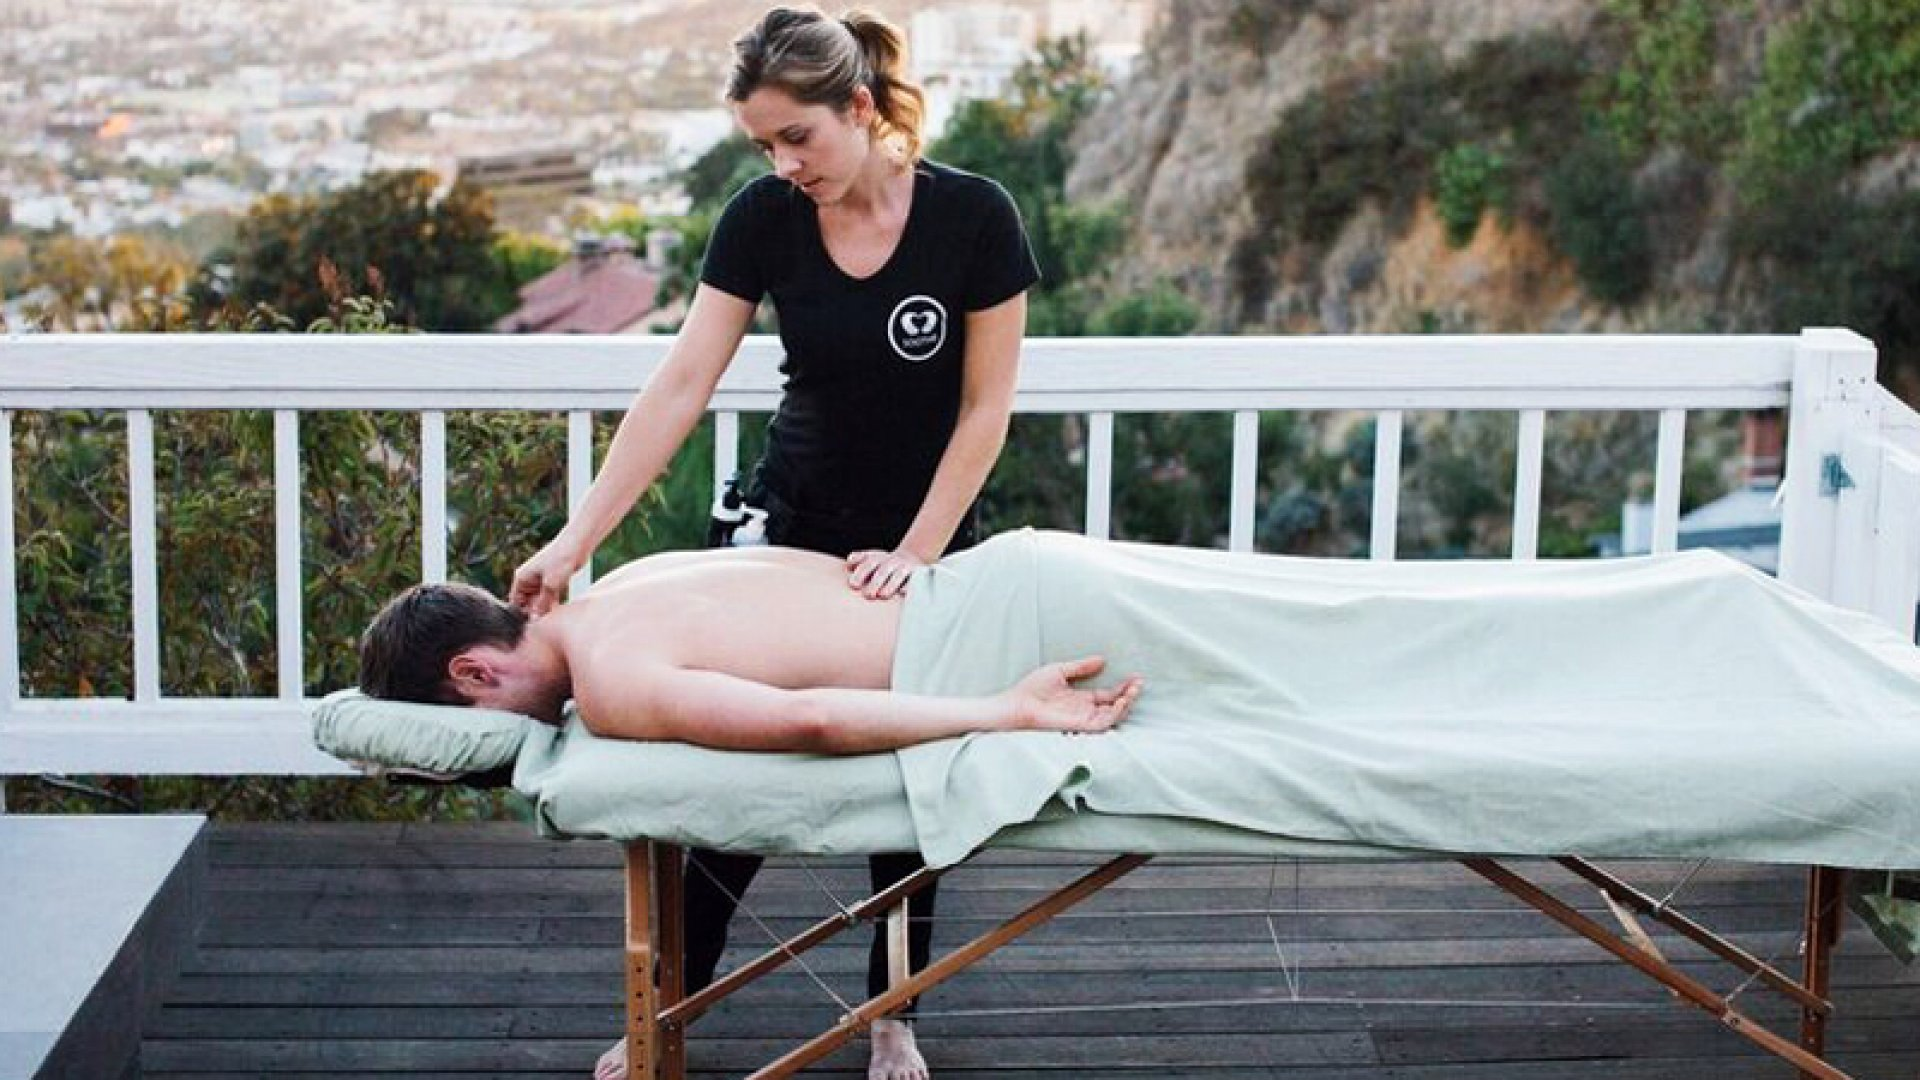 Welcome to the Billion-Dollar, Uber-for-Massages Industry